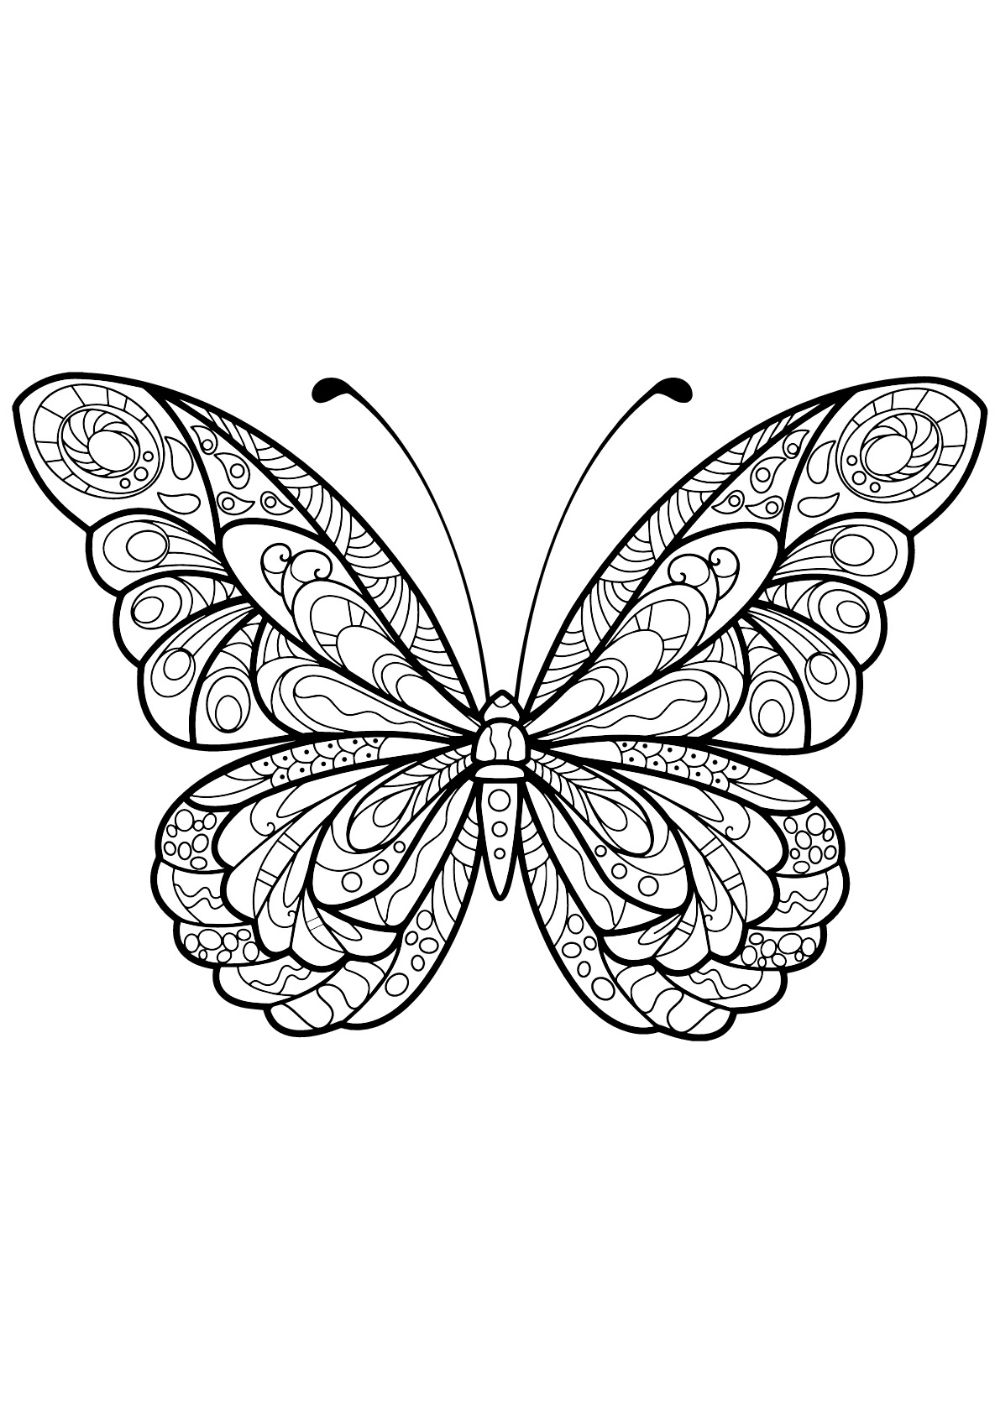 Icolor Butterflies Butterfly Coloring Page Butterfly Drawing Butterfly Mandala [ 1413 x 1000 Pixel ]